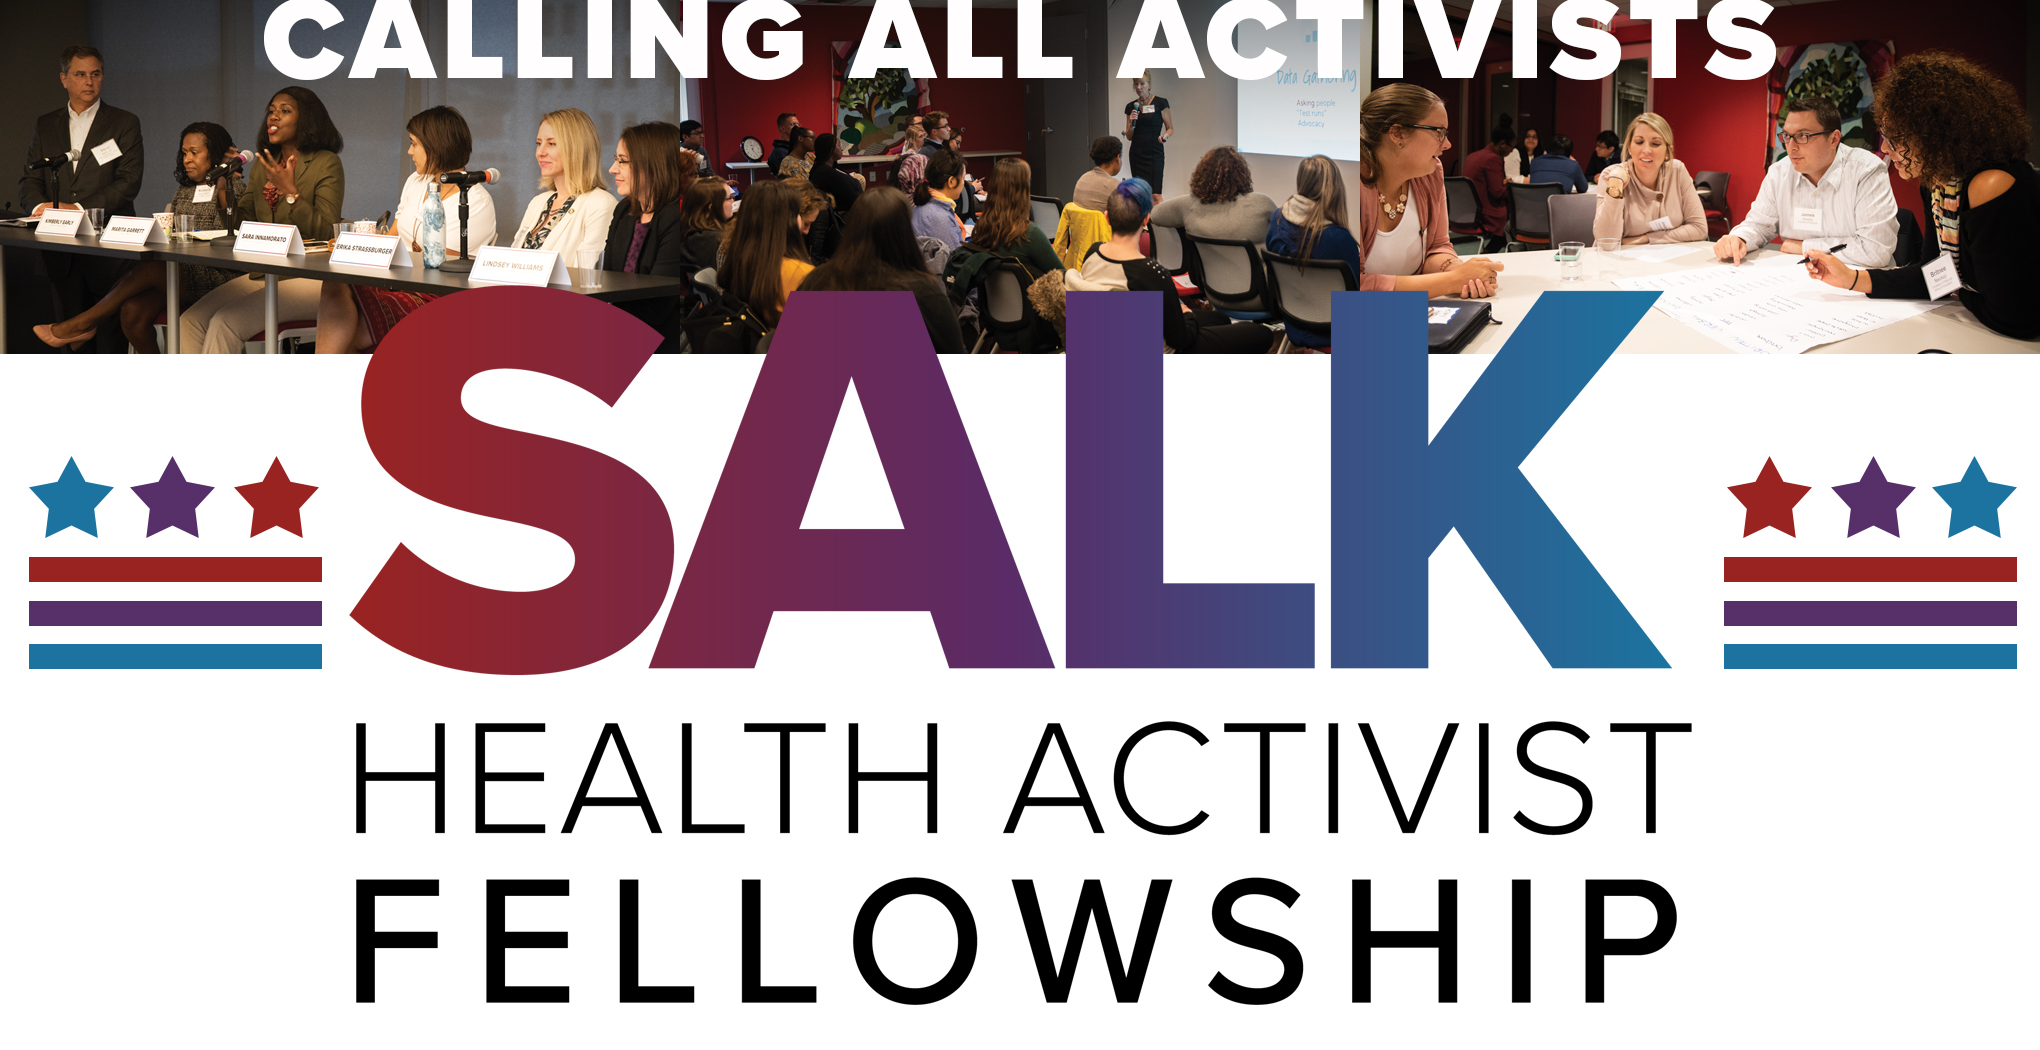 Applications Now Open for 2019 Salk Health Activist Fellowship